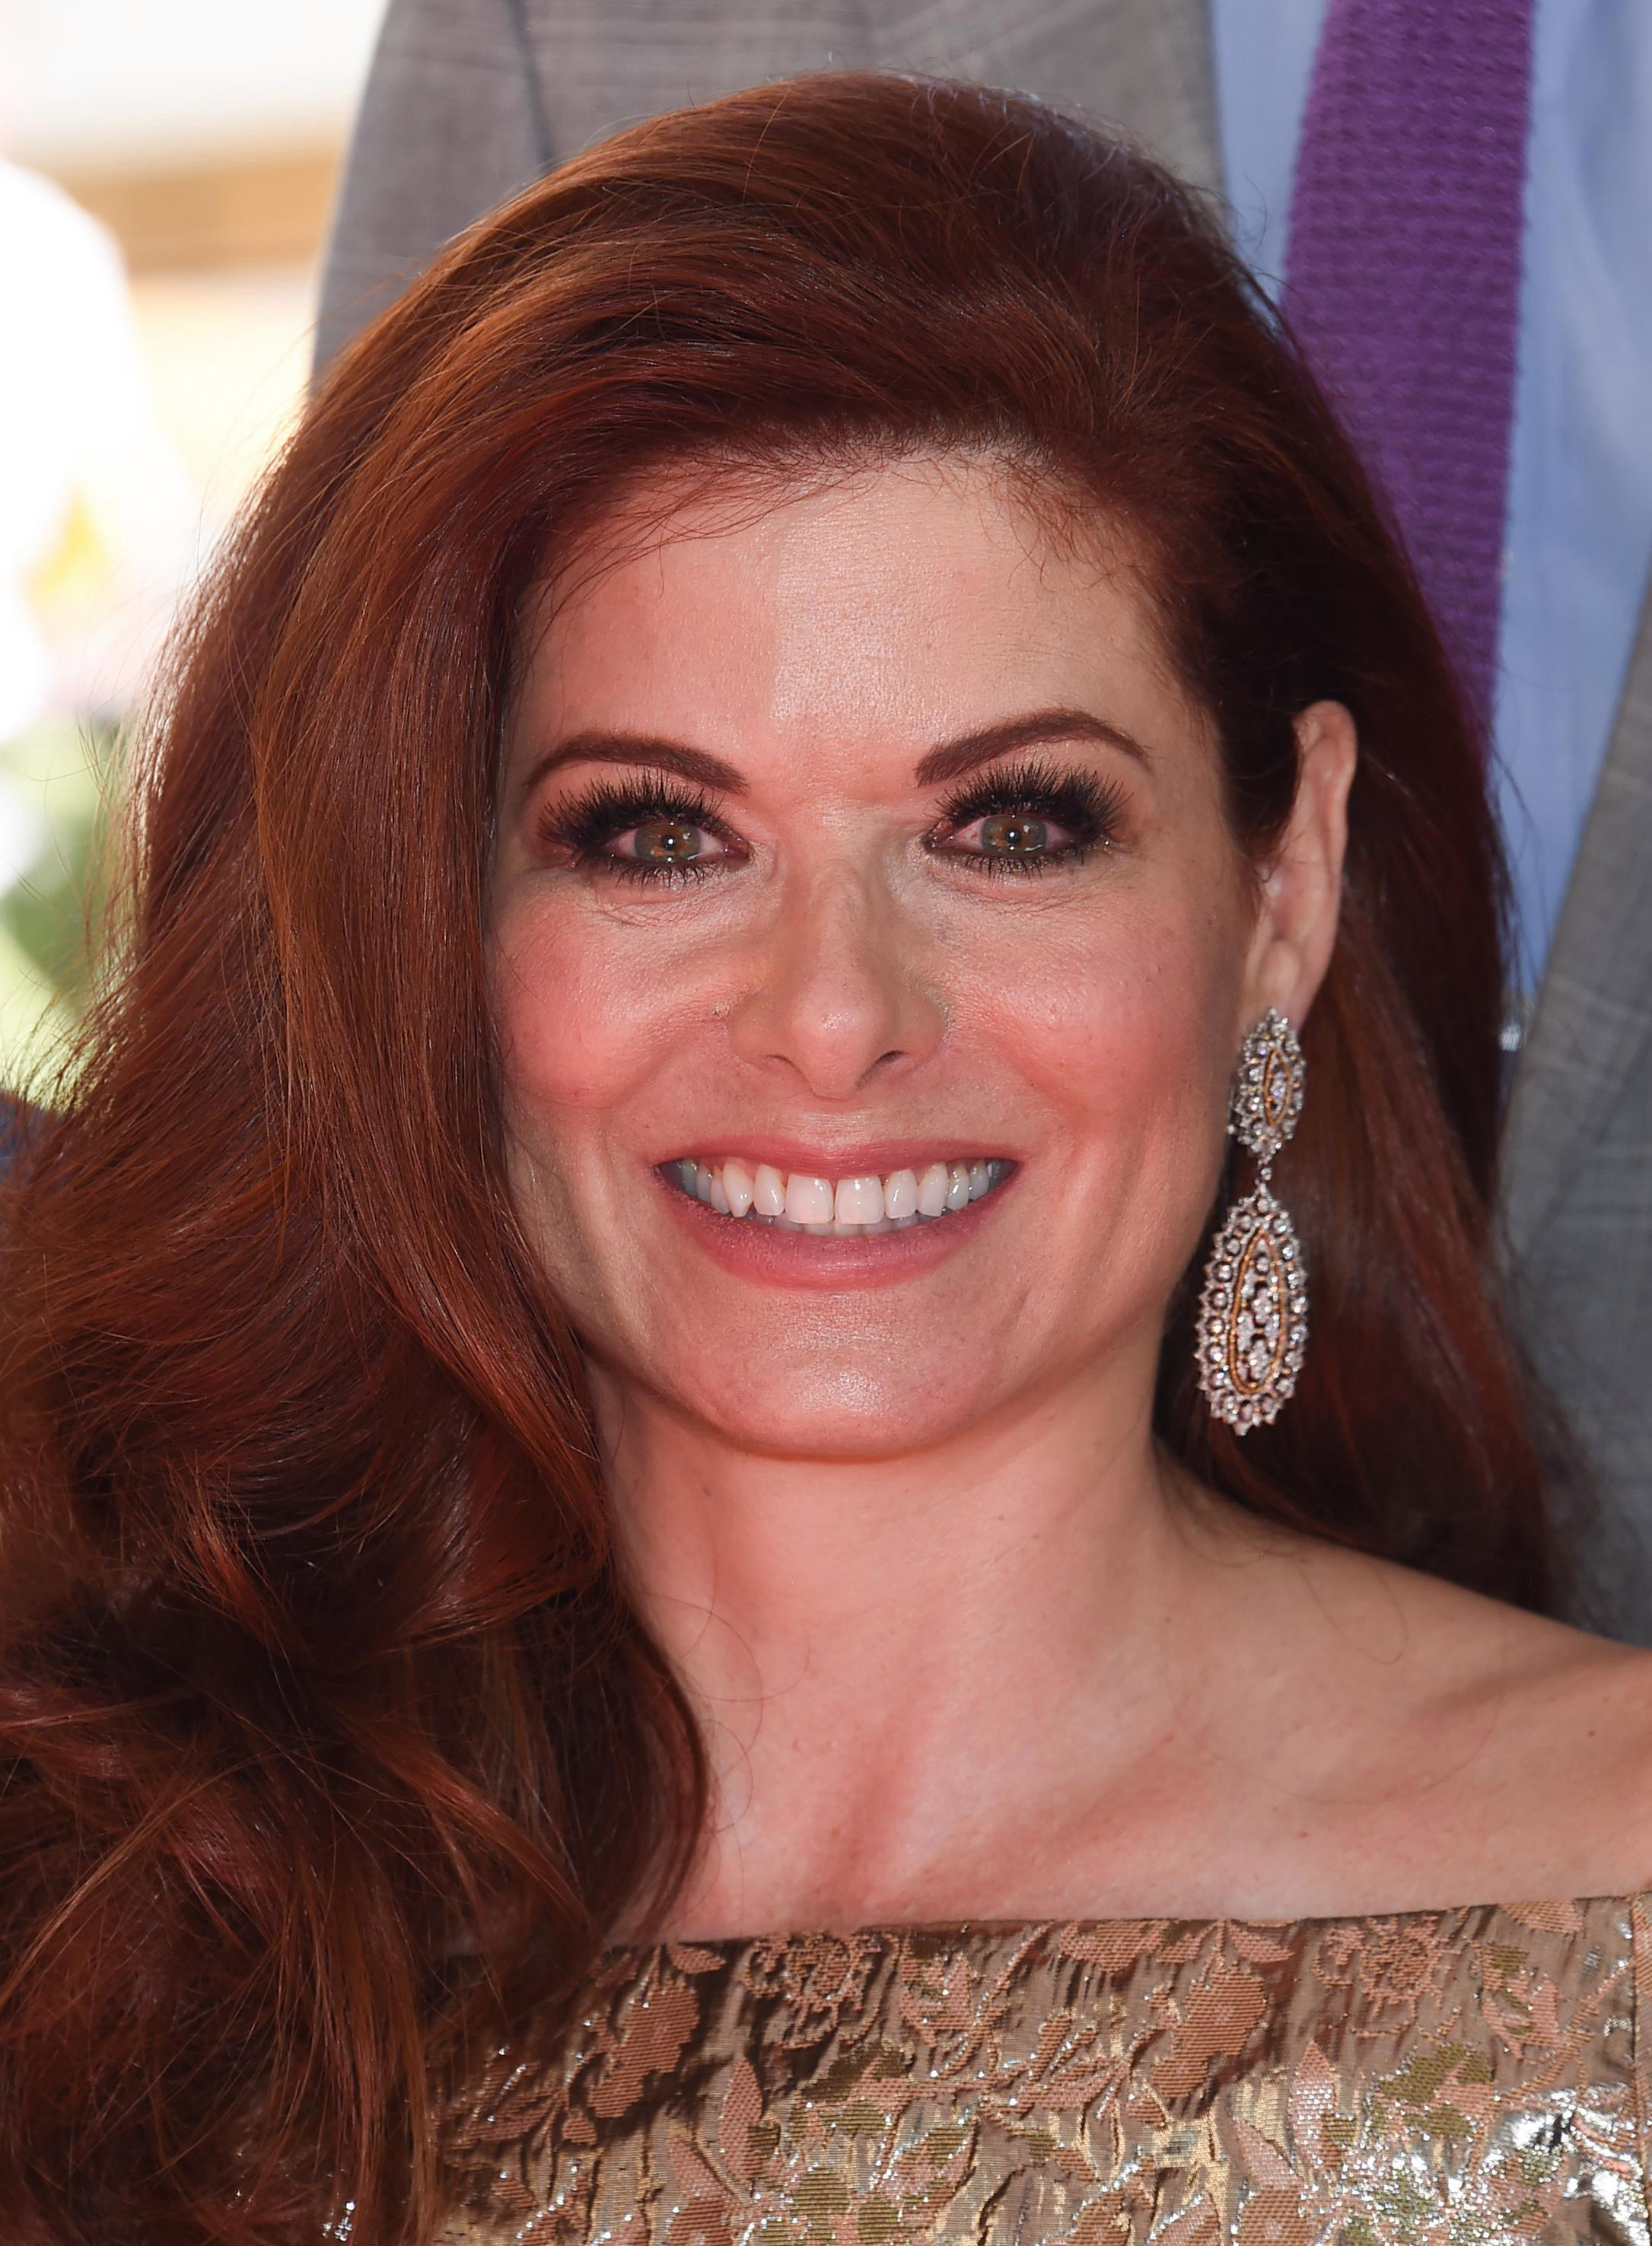 Who is Debra Messing? Grace Adler actress on Will & Grace and The Mothman Prophecies and Along Came Polly star